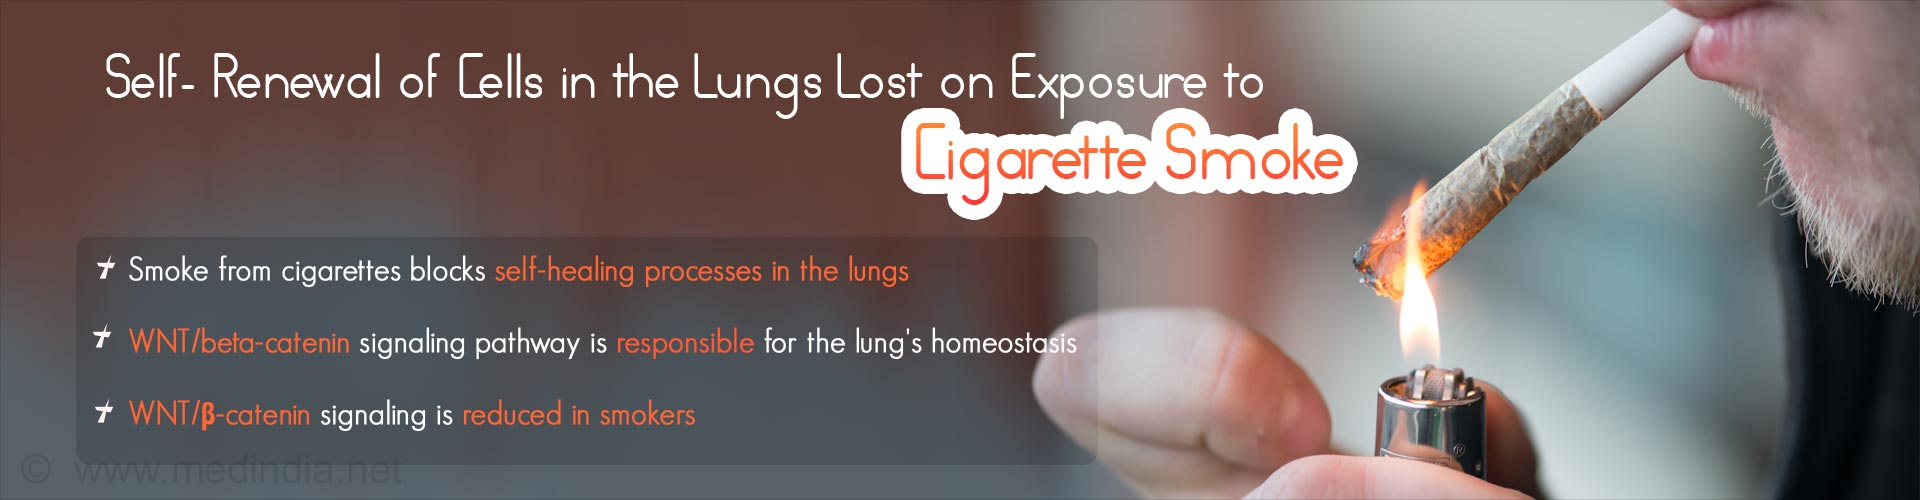 Cigarette Smoke Reduces Self-Healing Capacity of Lungs